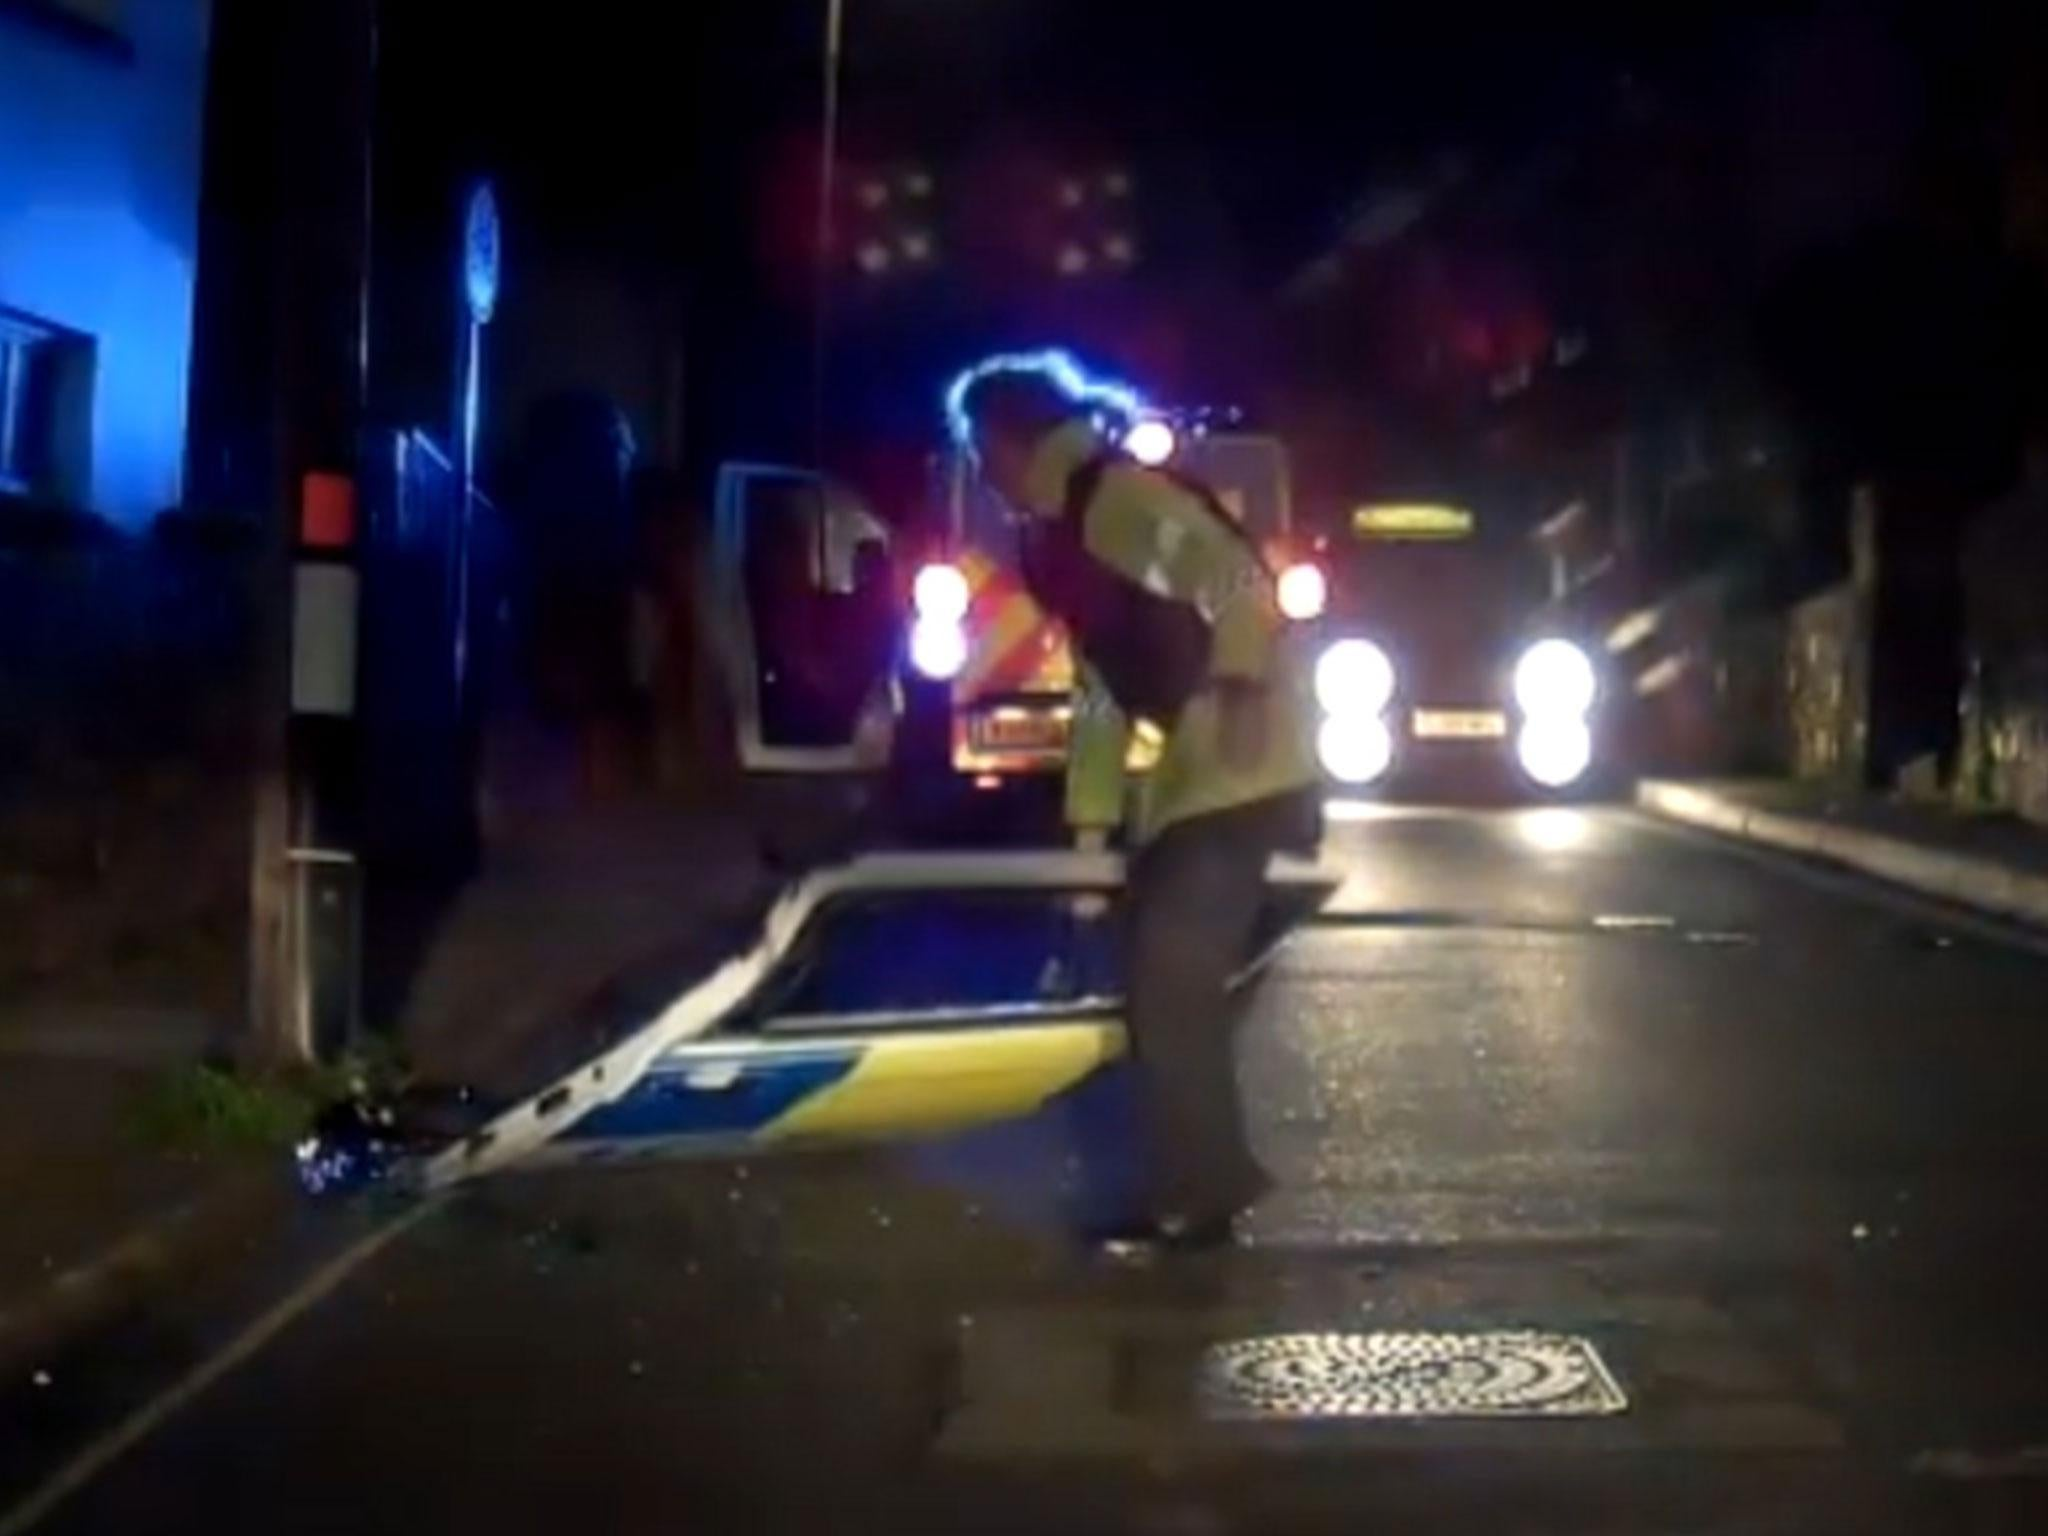 Police van door falls off in dashcam footage from Devon